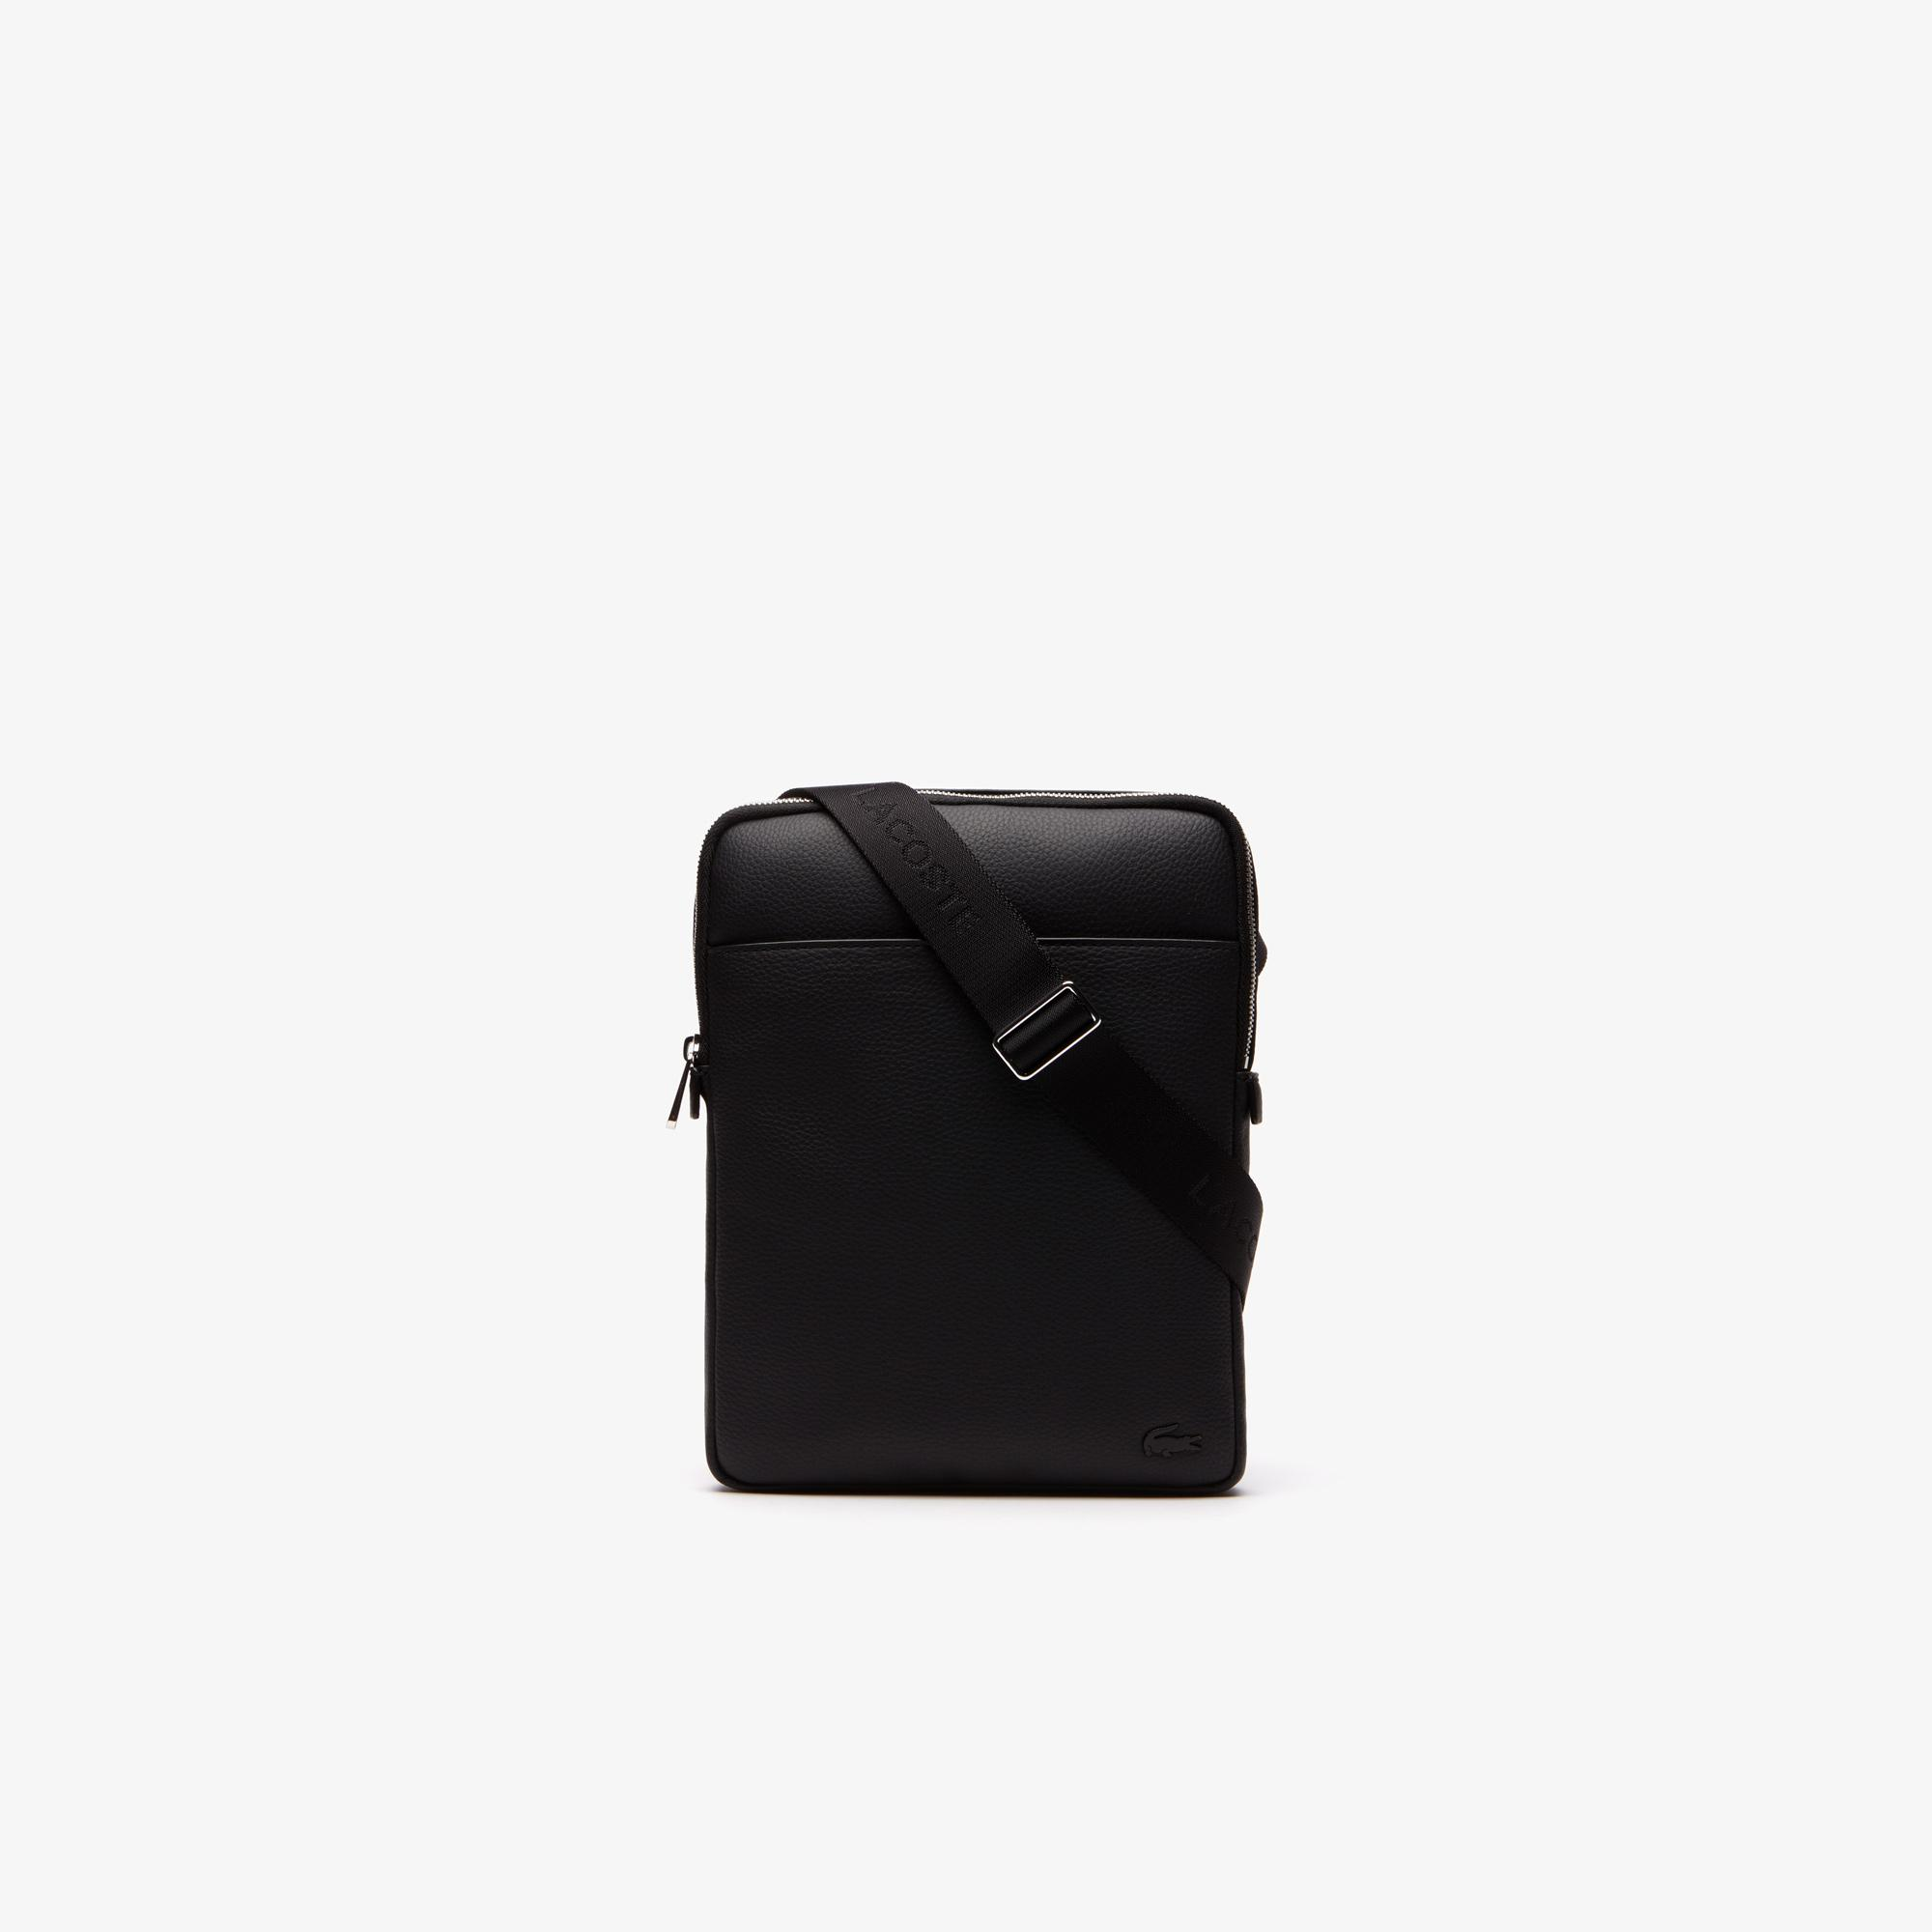 Lacoste Men's Gaël Coated Piqué Canvas Flat Zip Bag